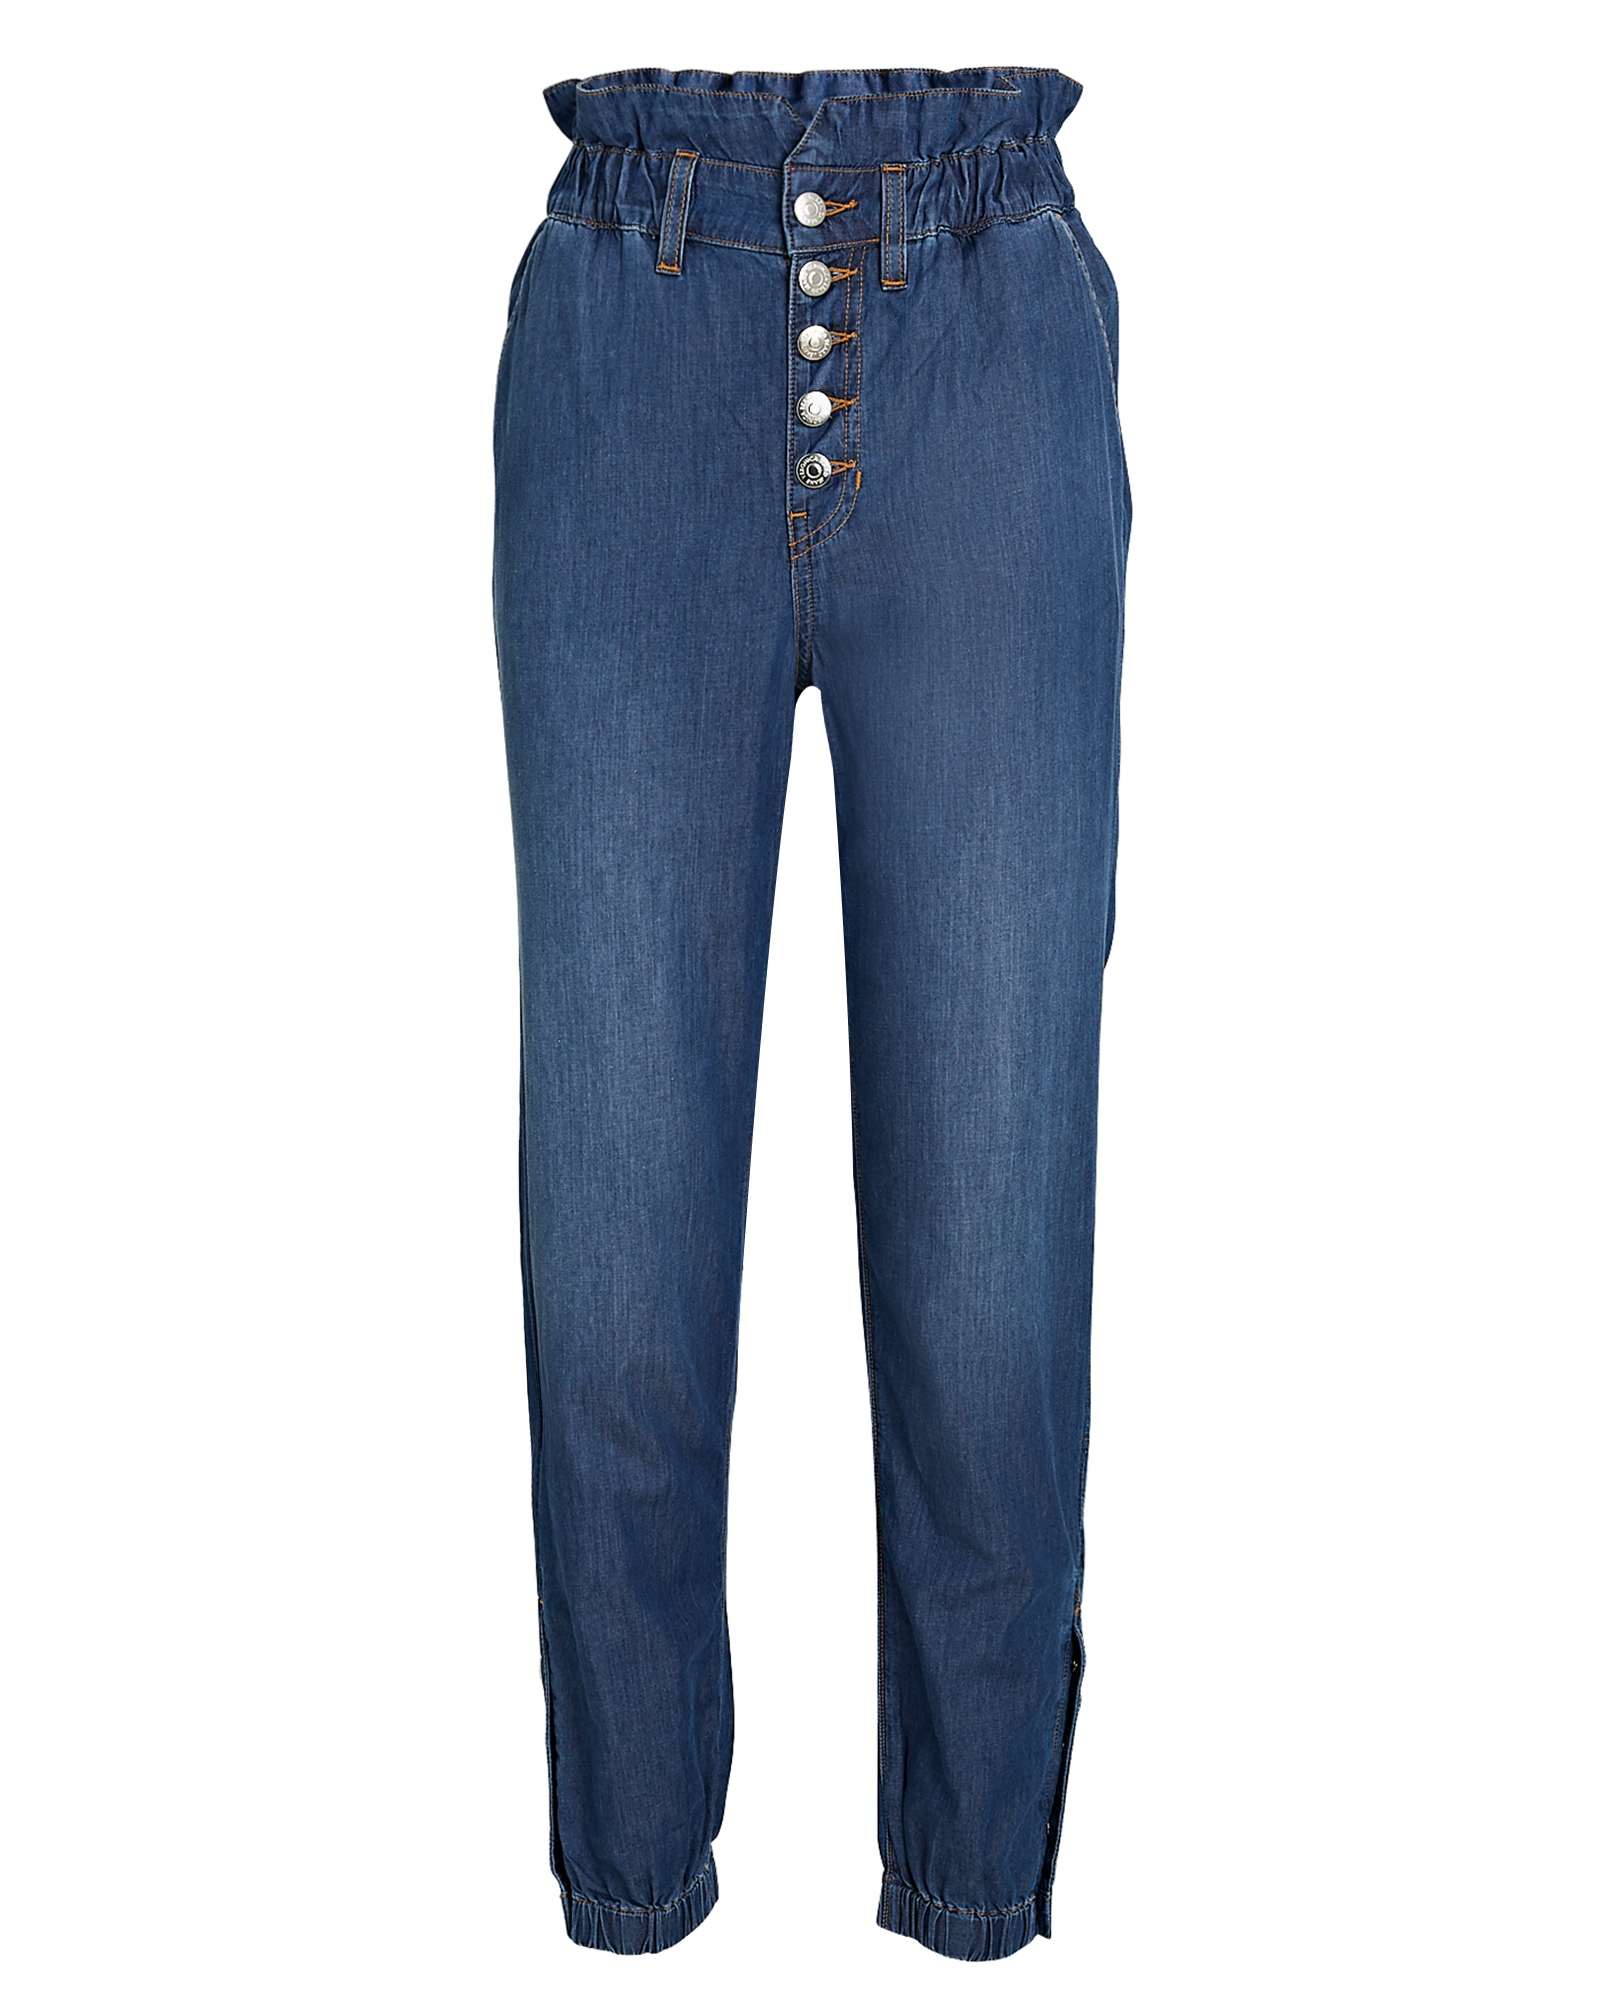 Veronica Beard Cottons Tedi Tapered Paperbag Jeans